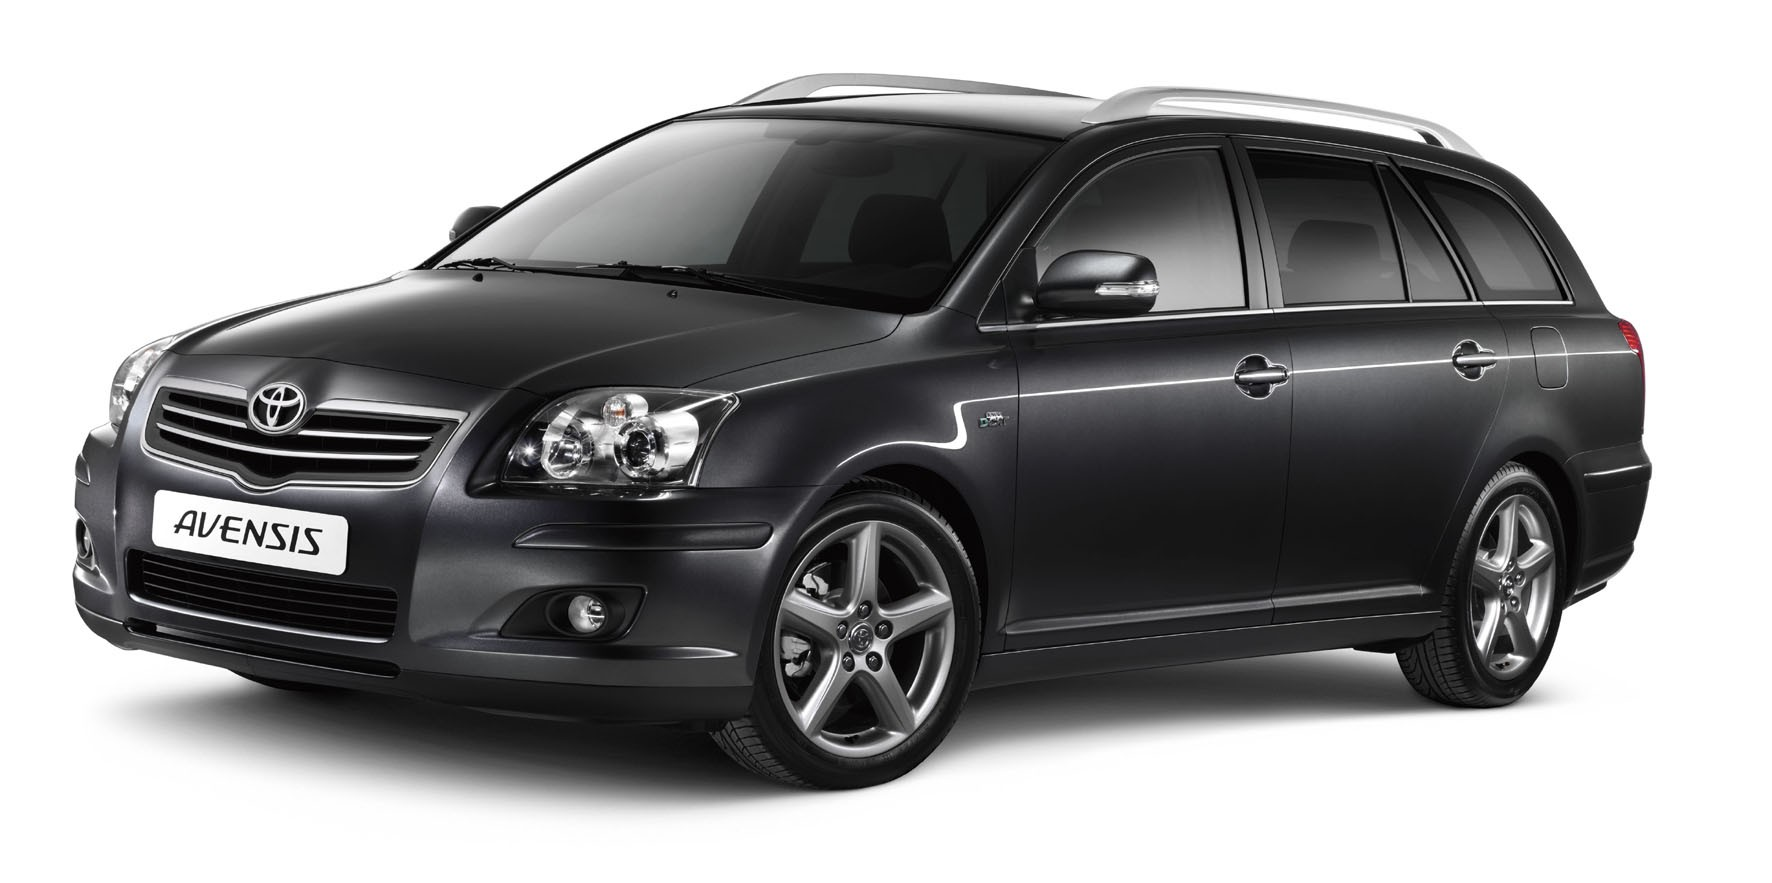 toyota avensis wagon quotazioni usato listino toyota avensis wagon usata. Black Bedroom Furniture Sets. Home Design Ideas